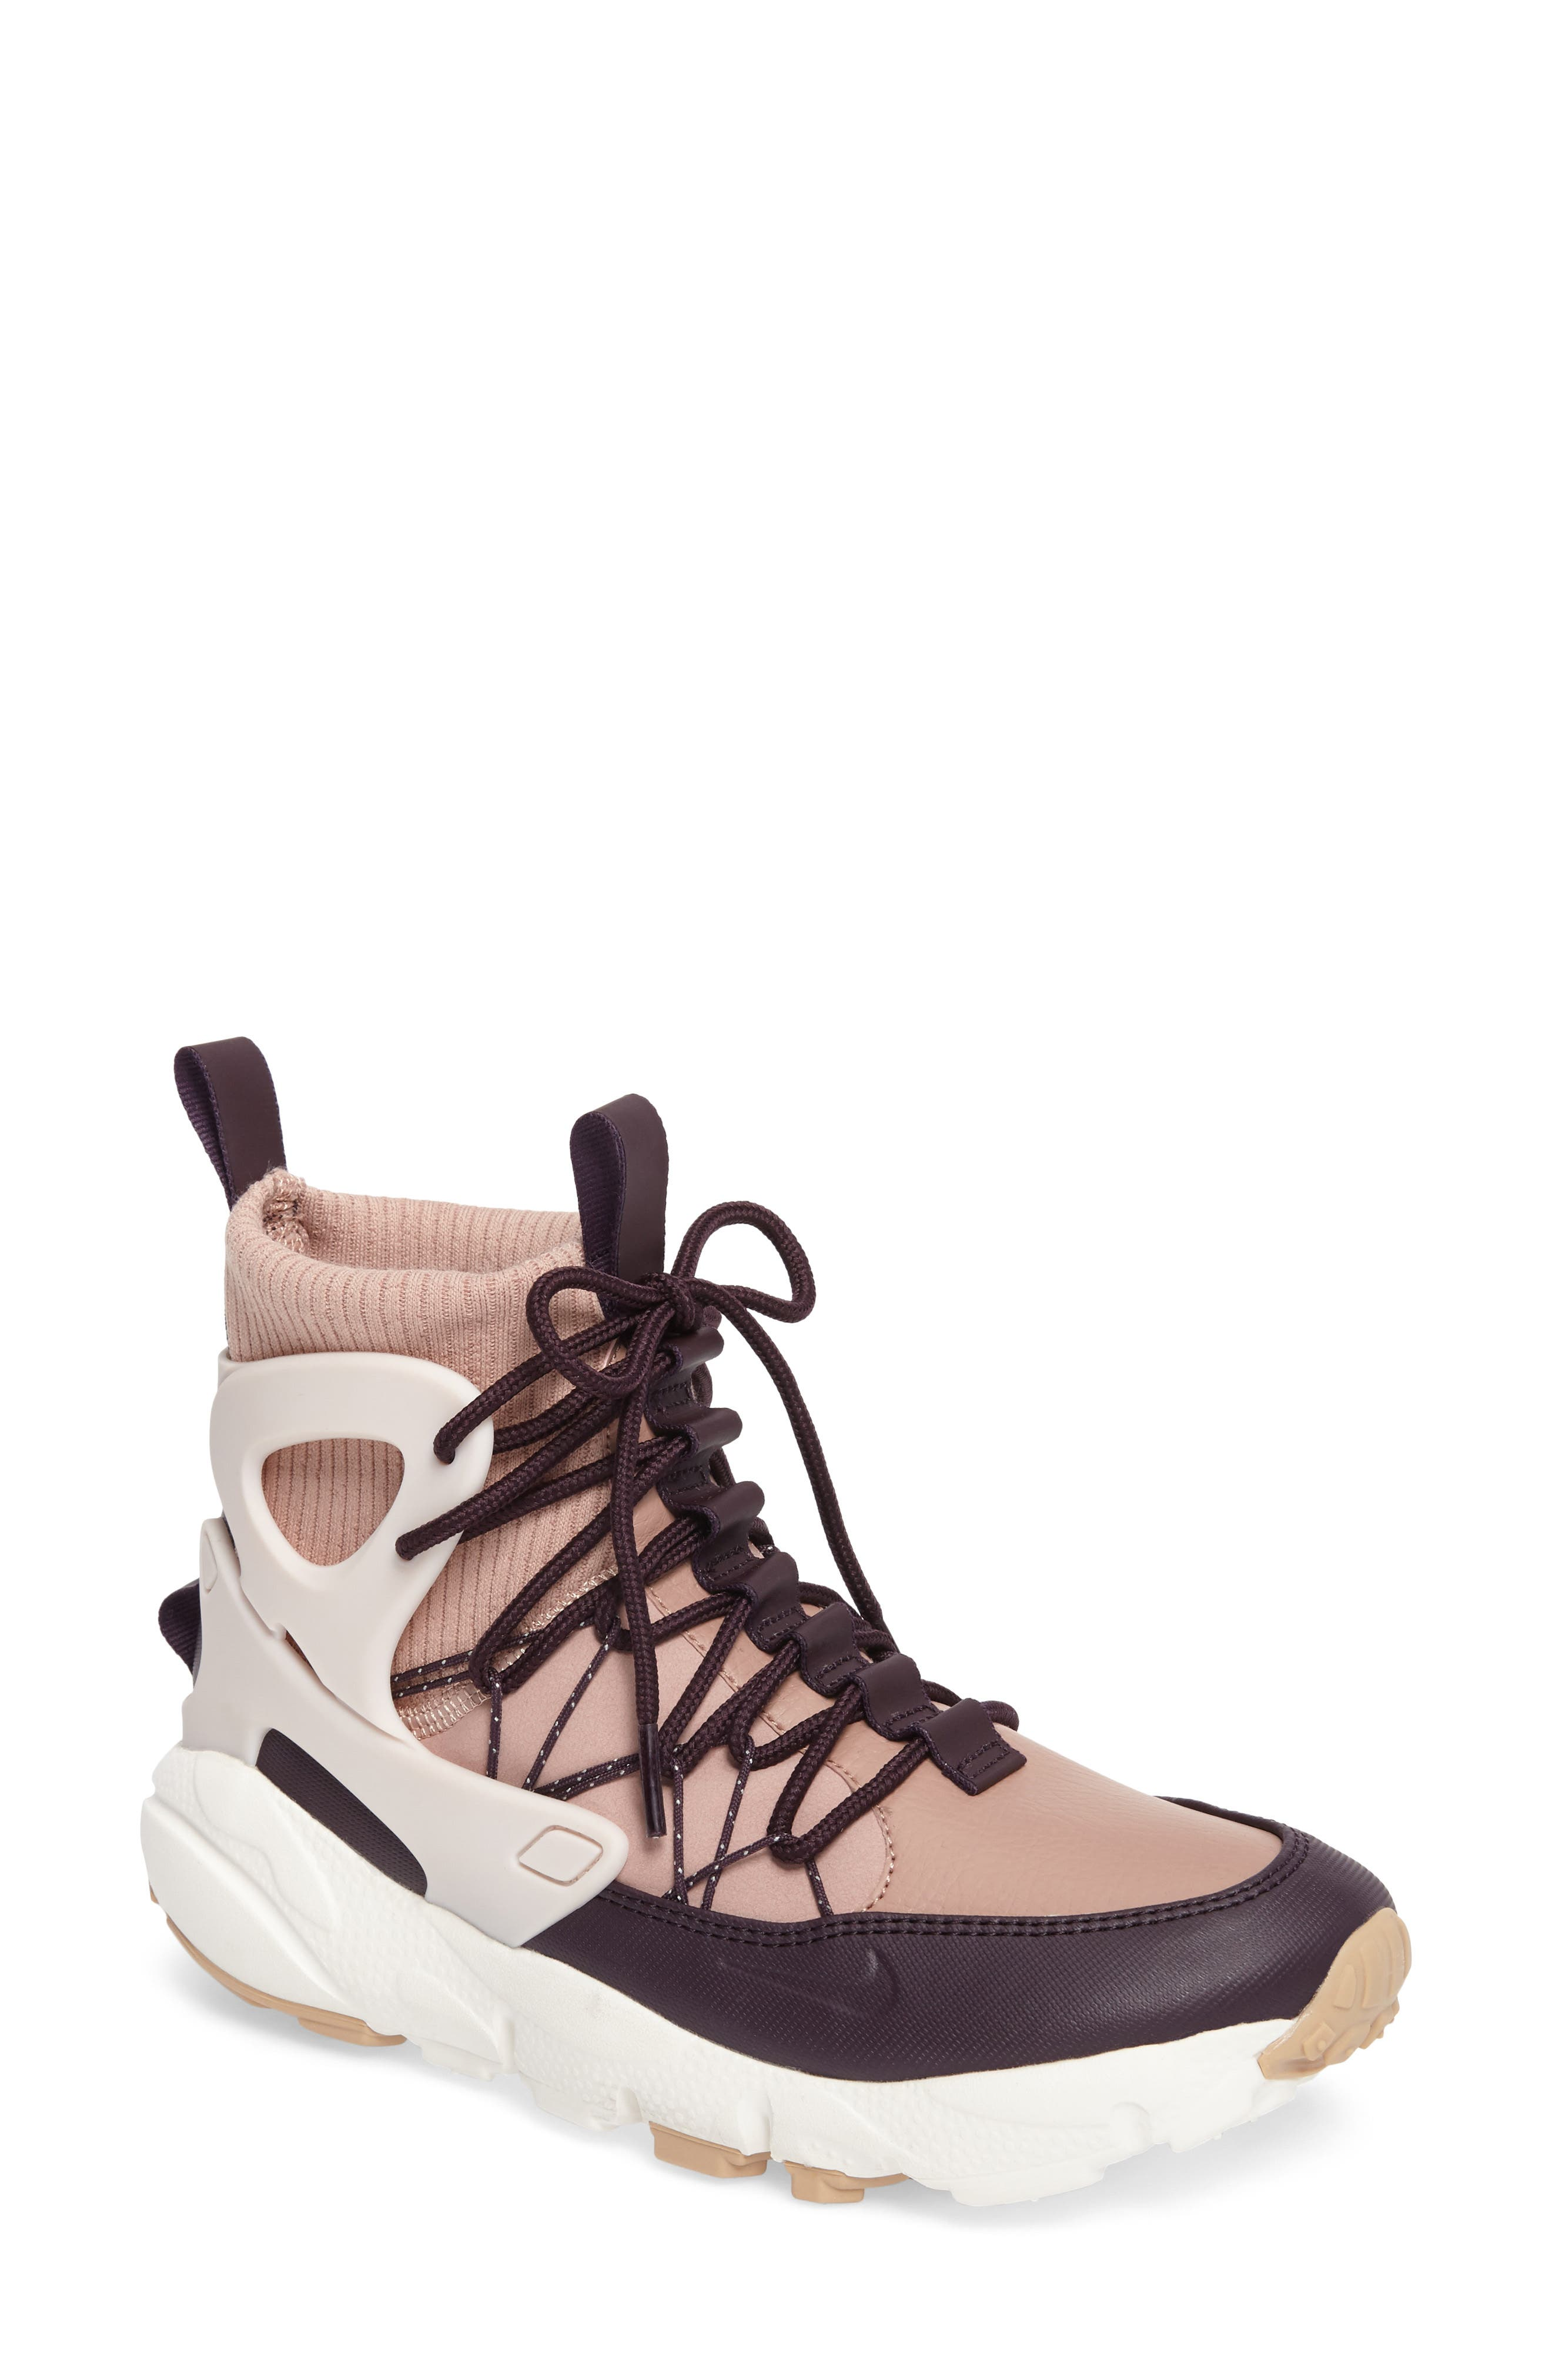 AIR FOOTSCAPE MID SNEAKER BOOT